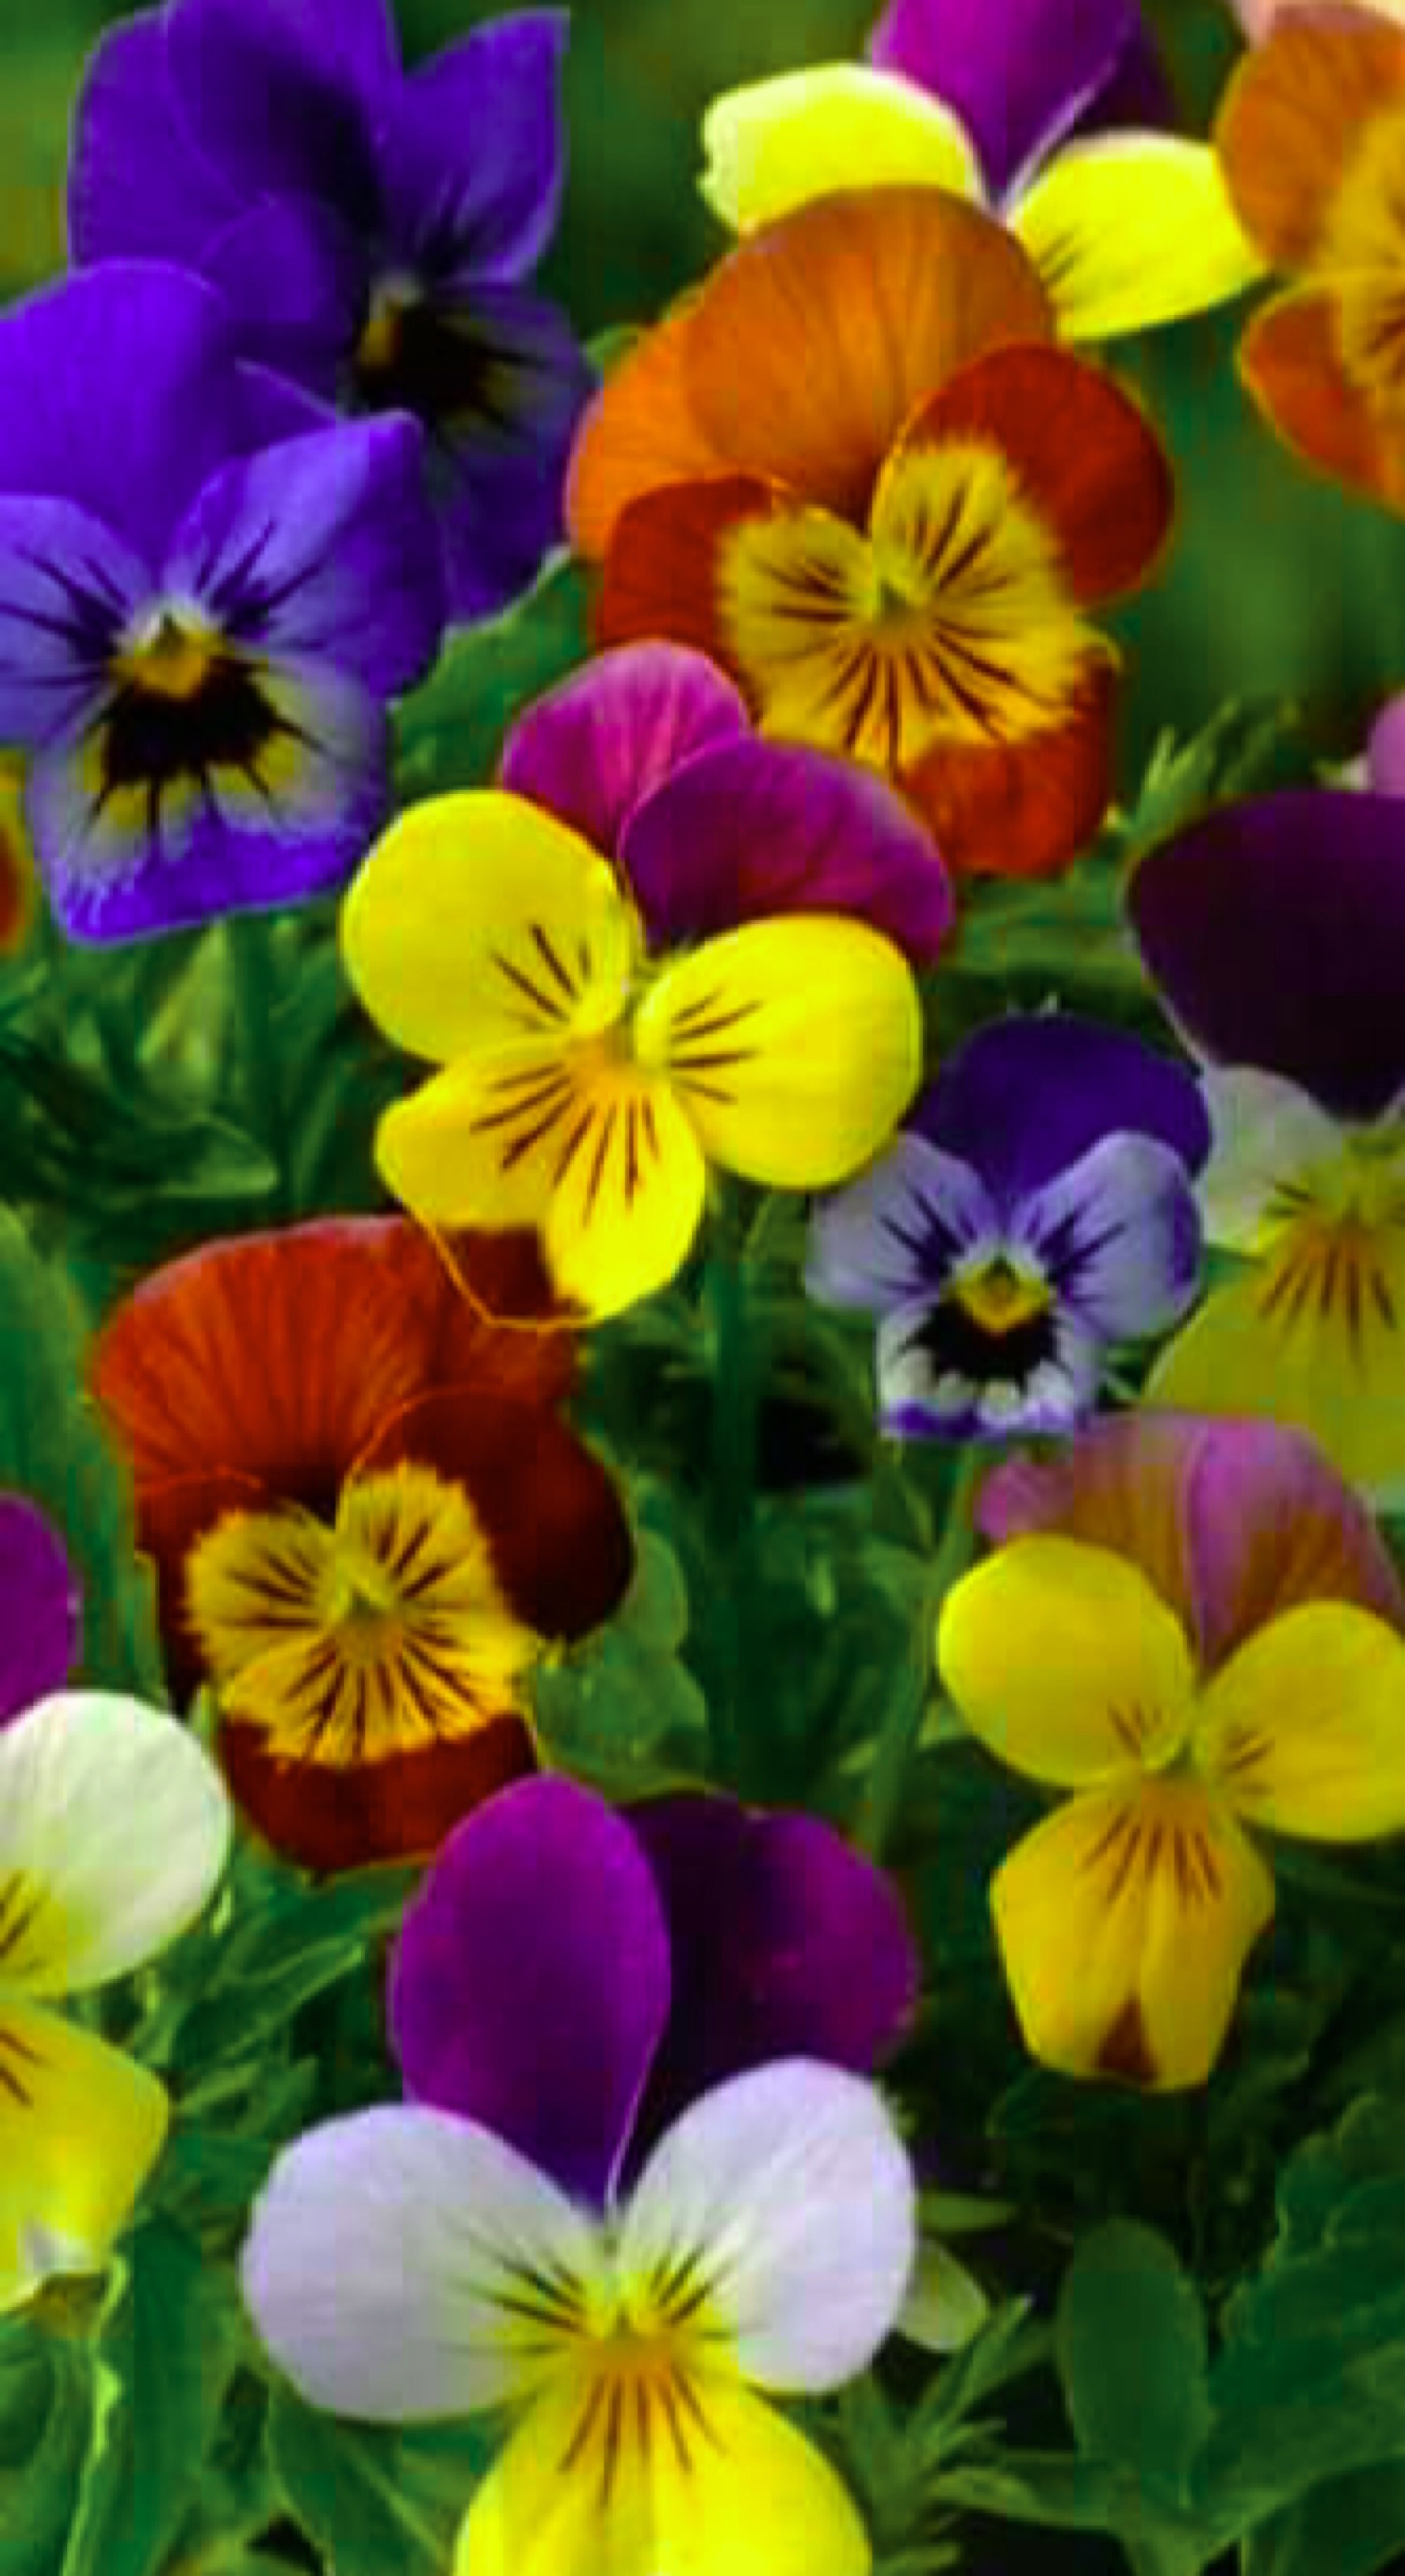 Violets And Pansies Are Among The Most Beautiful Flowers In The